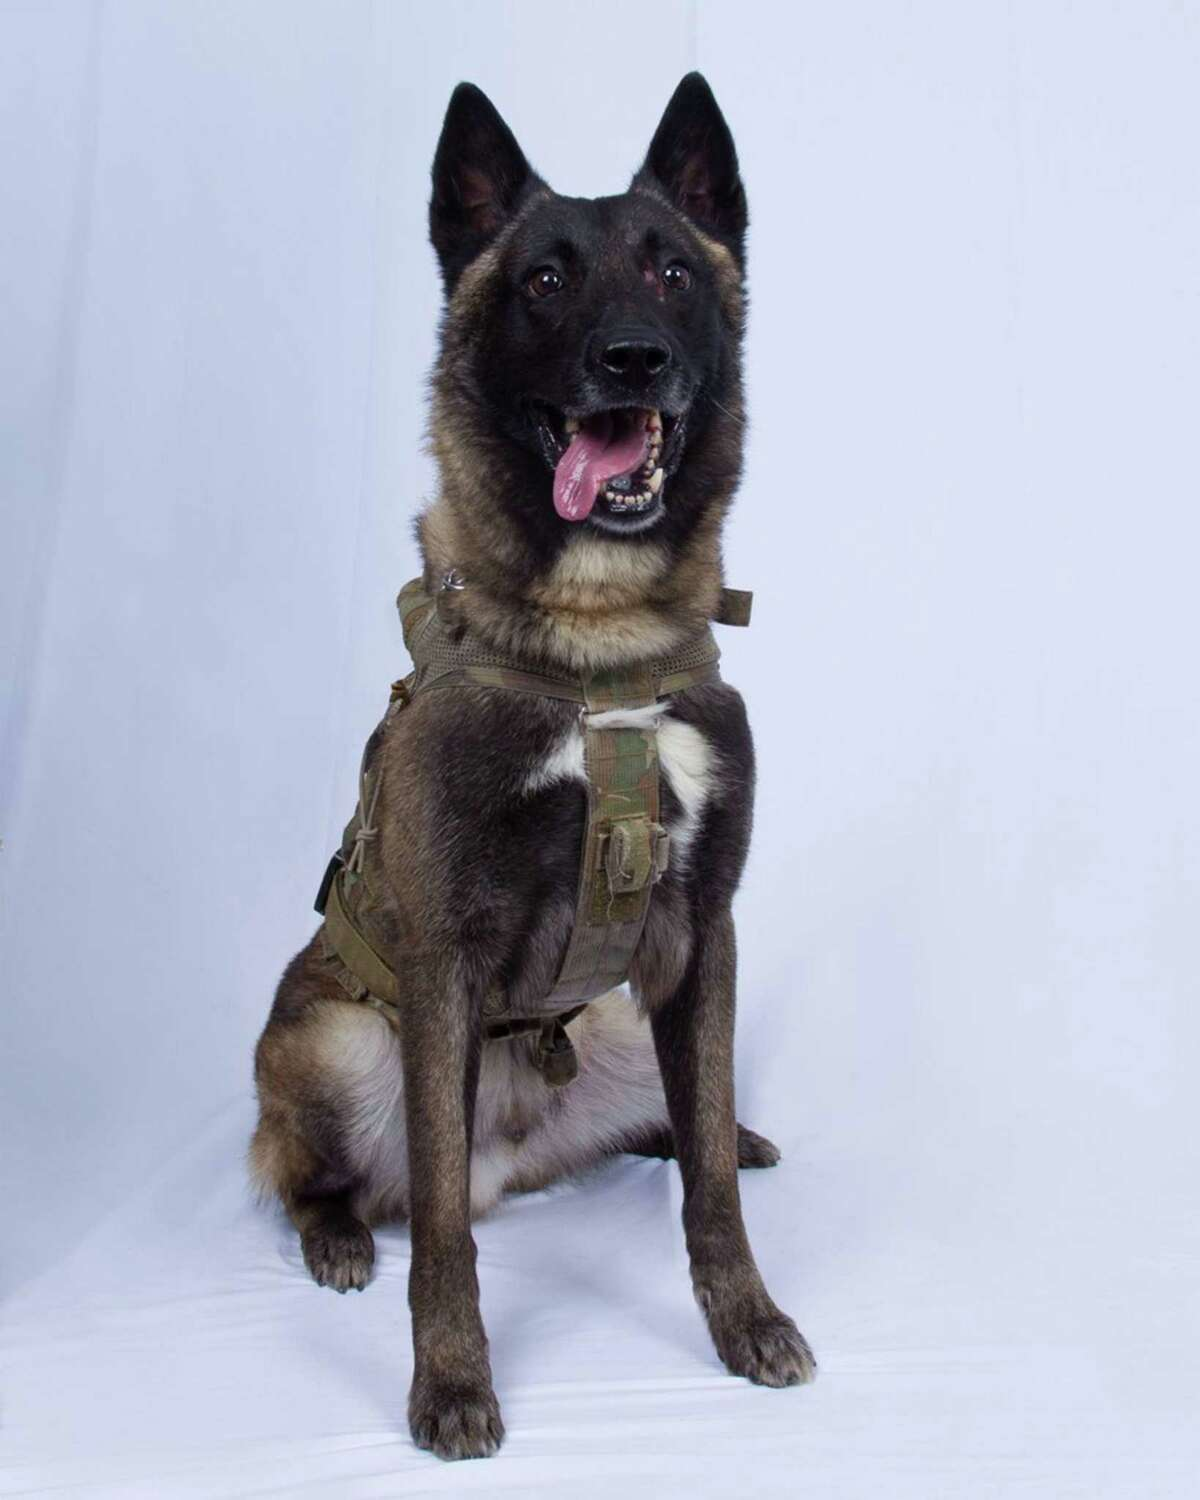 Conan sustained minor injuries during the Al-Baghdadi raid. President Donald Trump has praised Conan as a hero, but the president usually does not have much love for dogs. In fact, calling people dogs is a characteristic putdown for him.